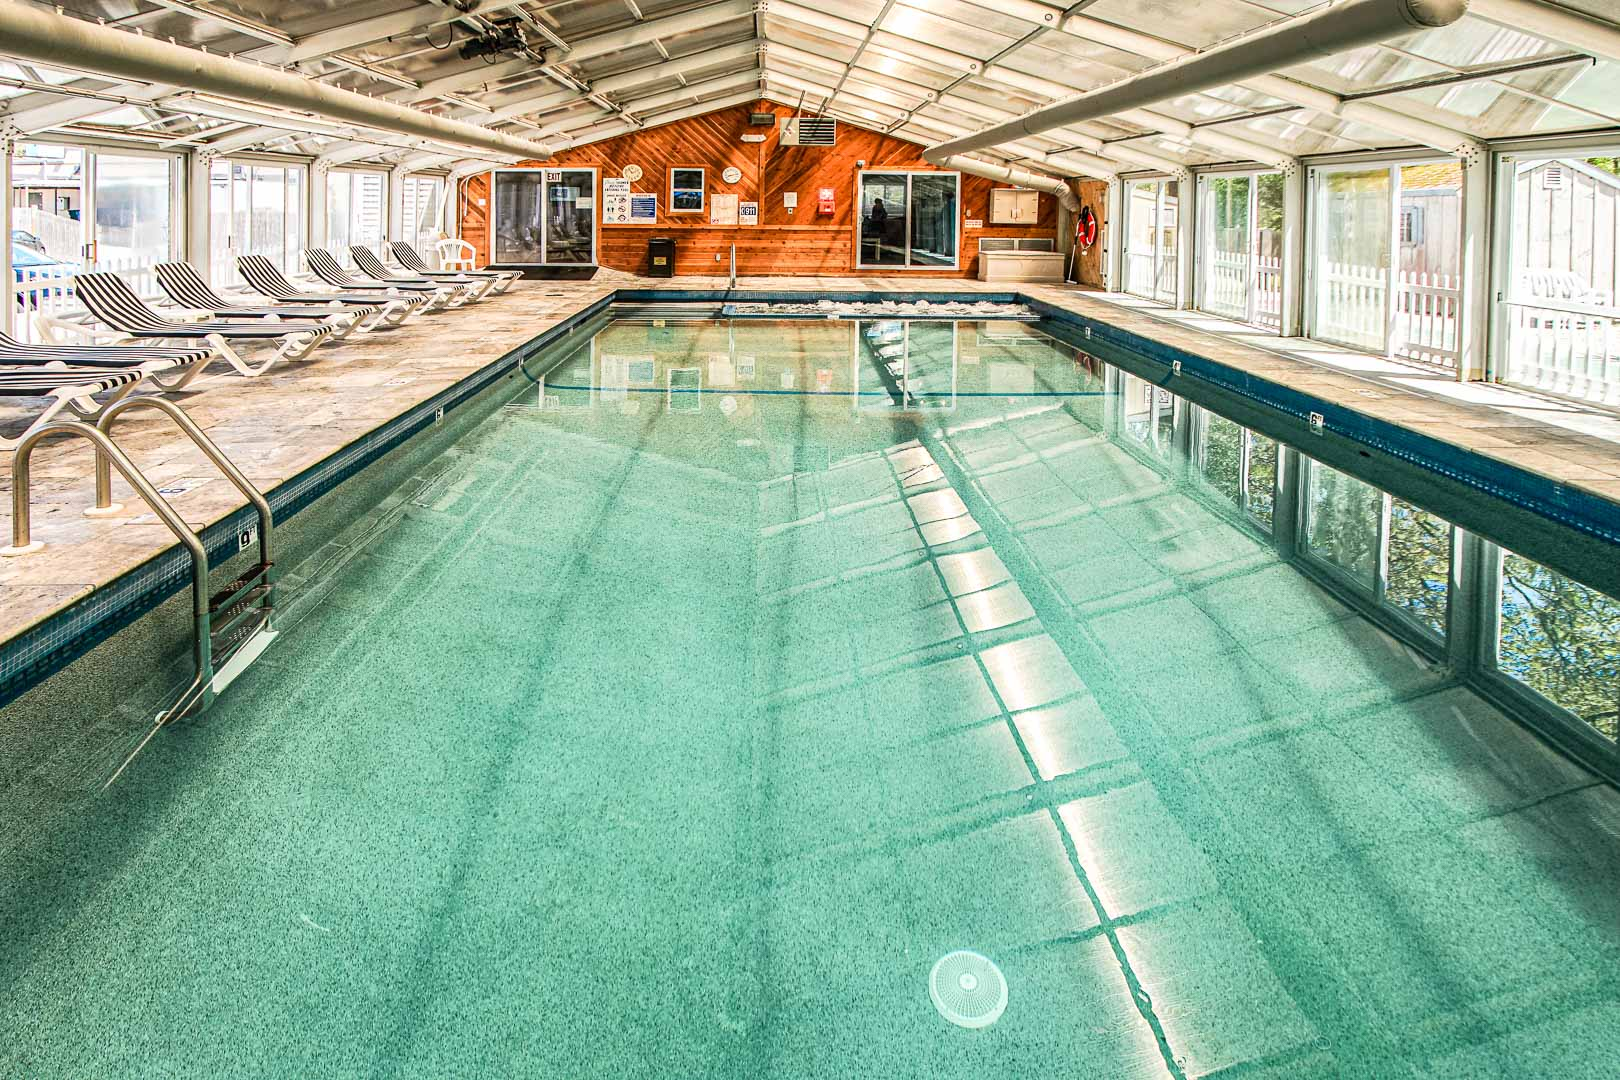 An ample indoor swimming pool at VRI's Cape Winds Resort in Massachusetts.